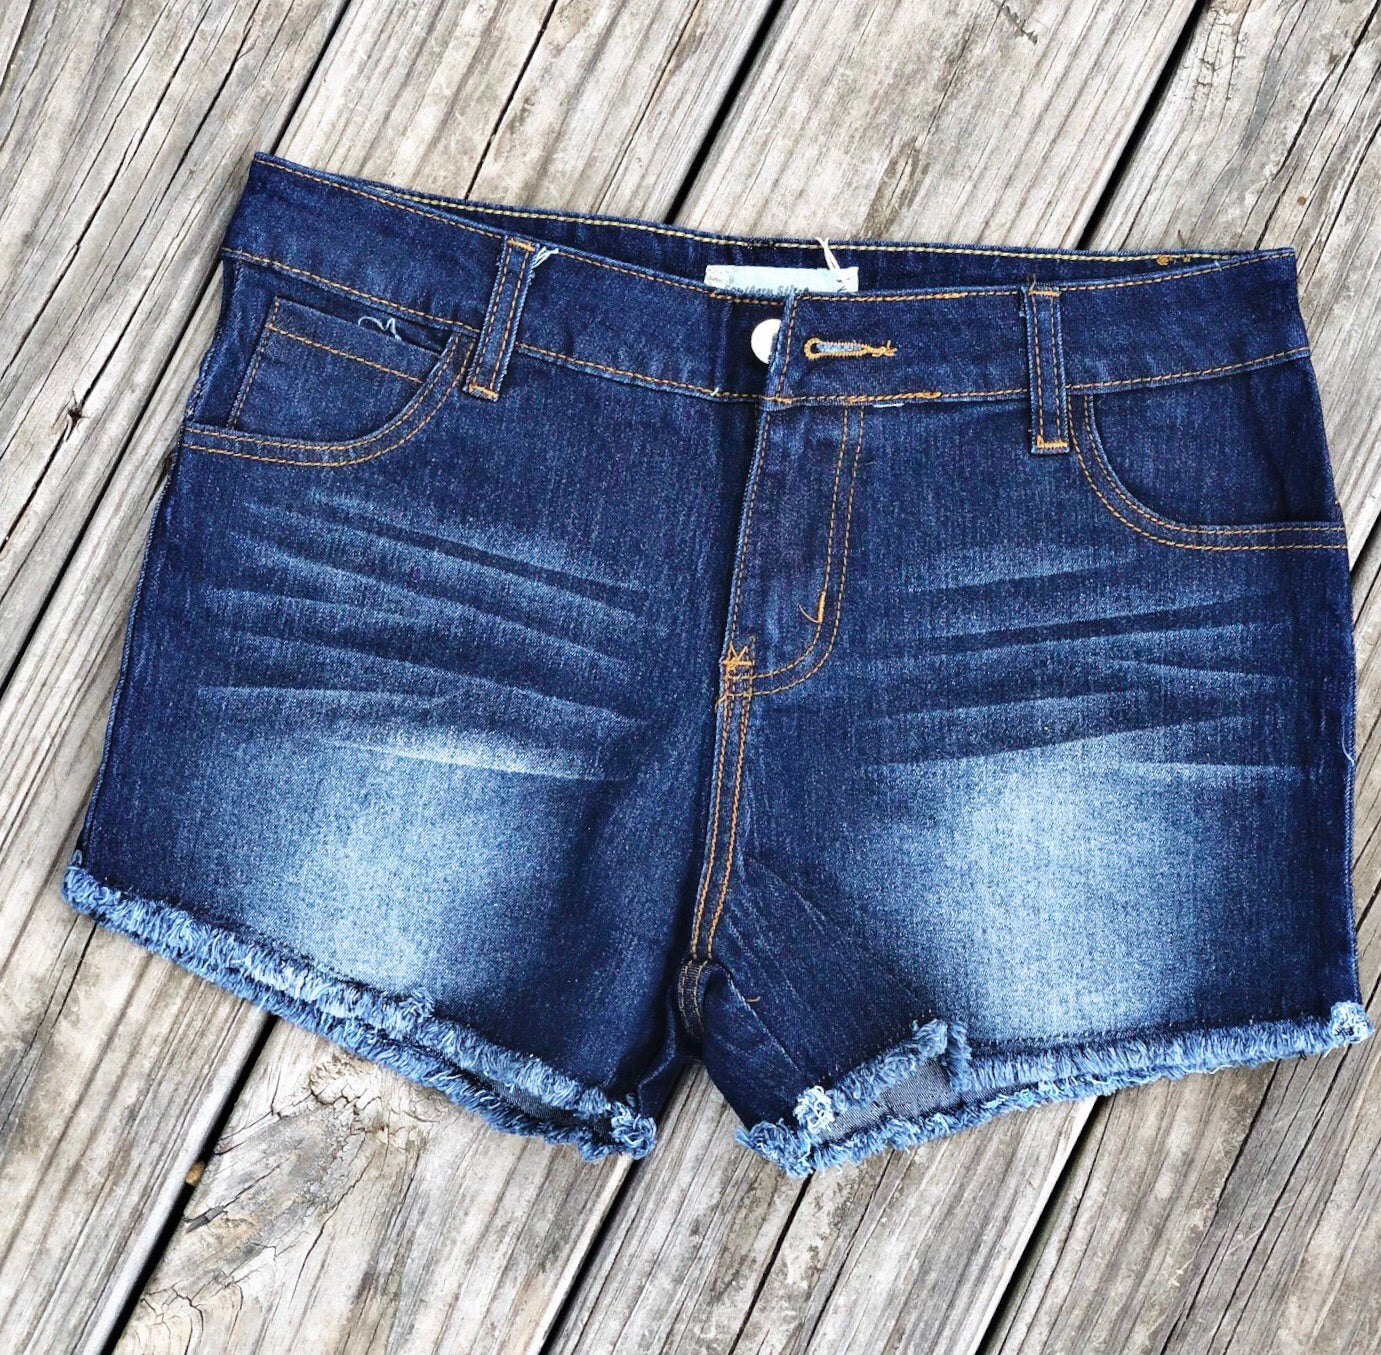 Frayed Blue Jean Shorts